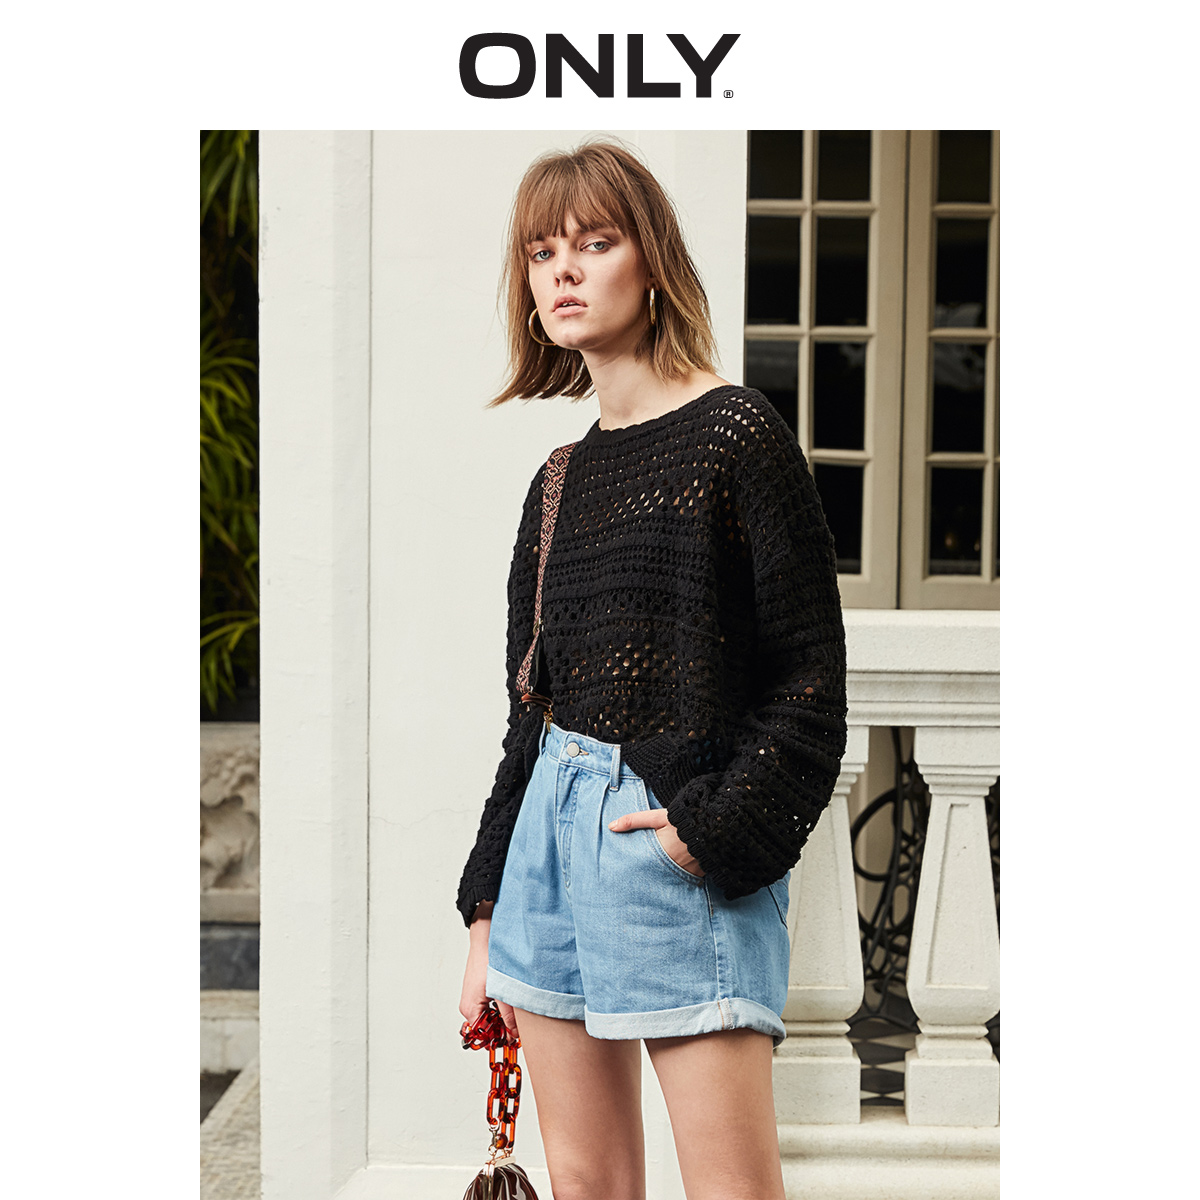 ONLY  Spring Summer New Women's Loose Fit Long-sleeved Pullover Knit |119124541